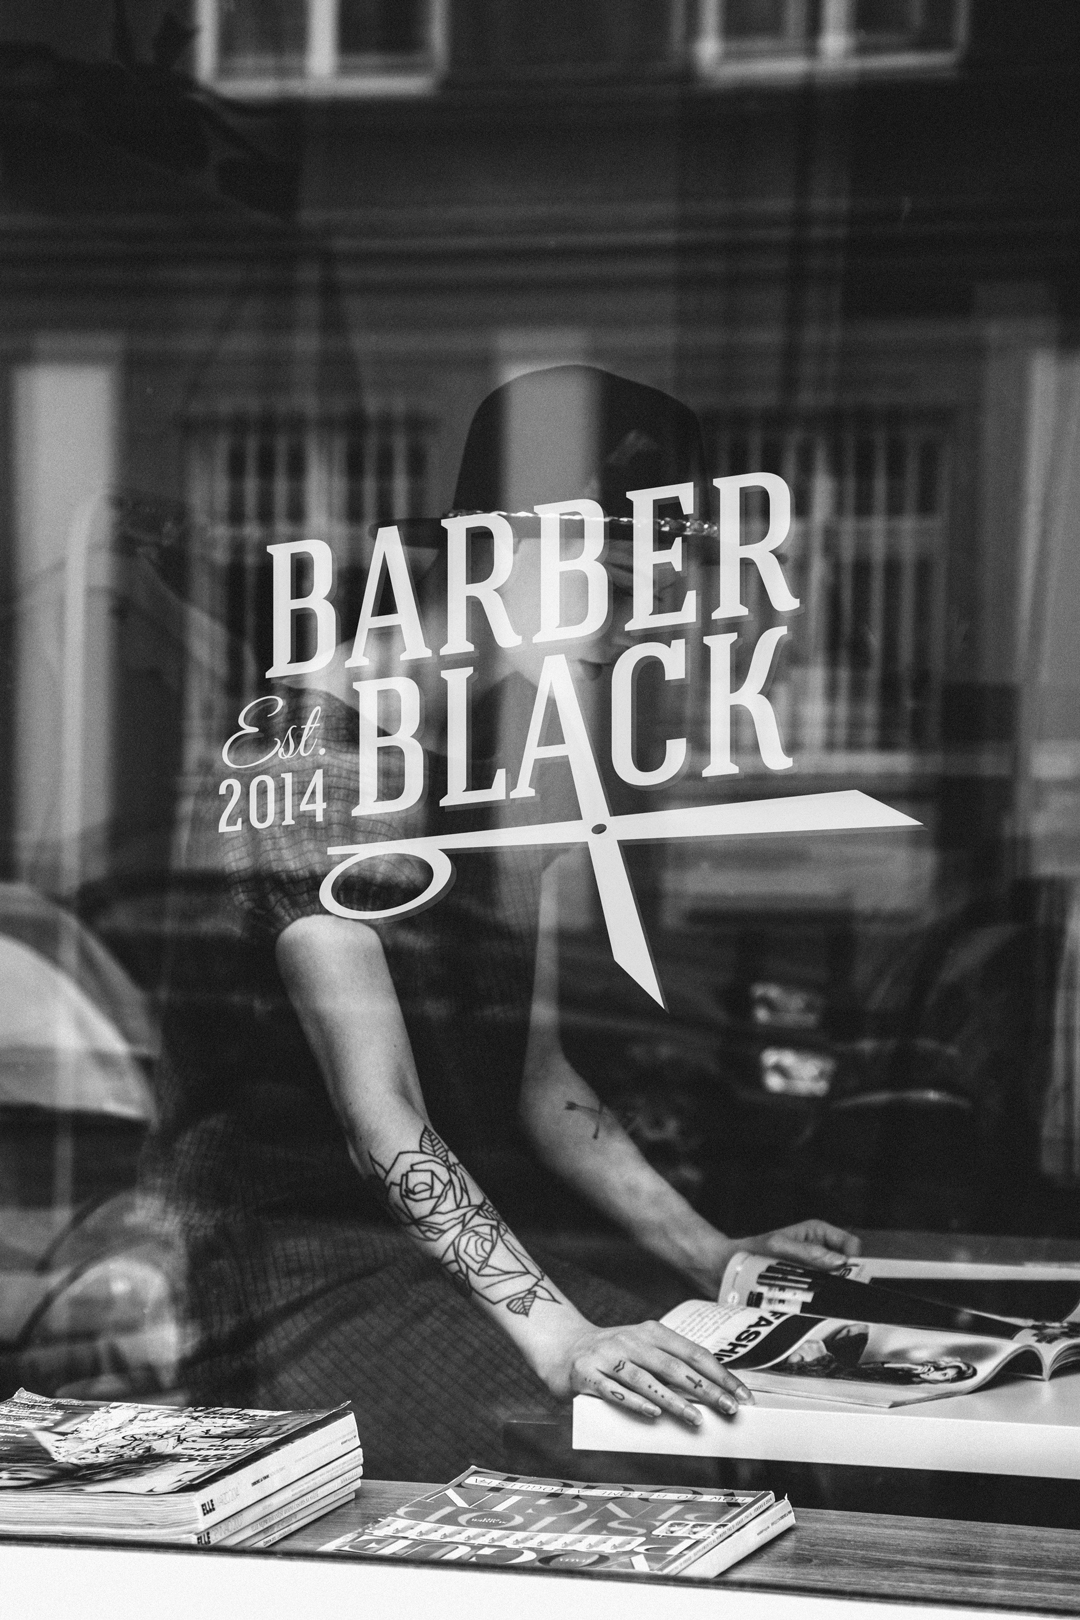 barber-black-window-sticker.jpg